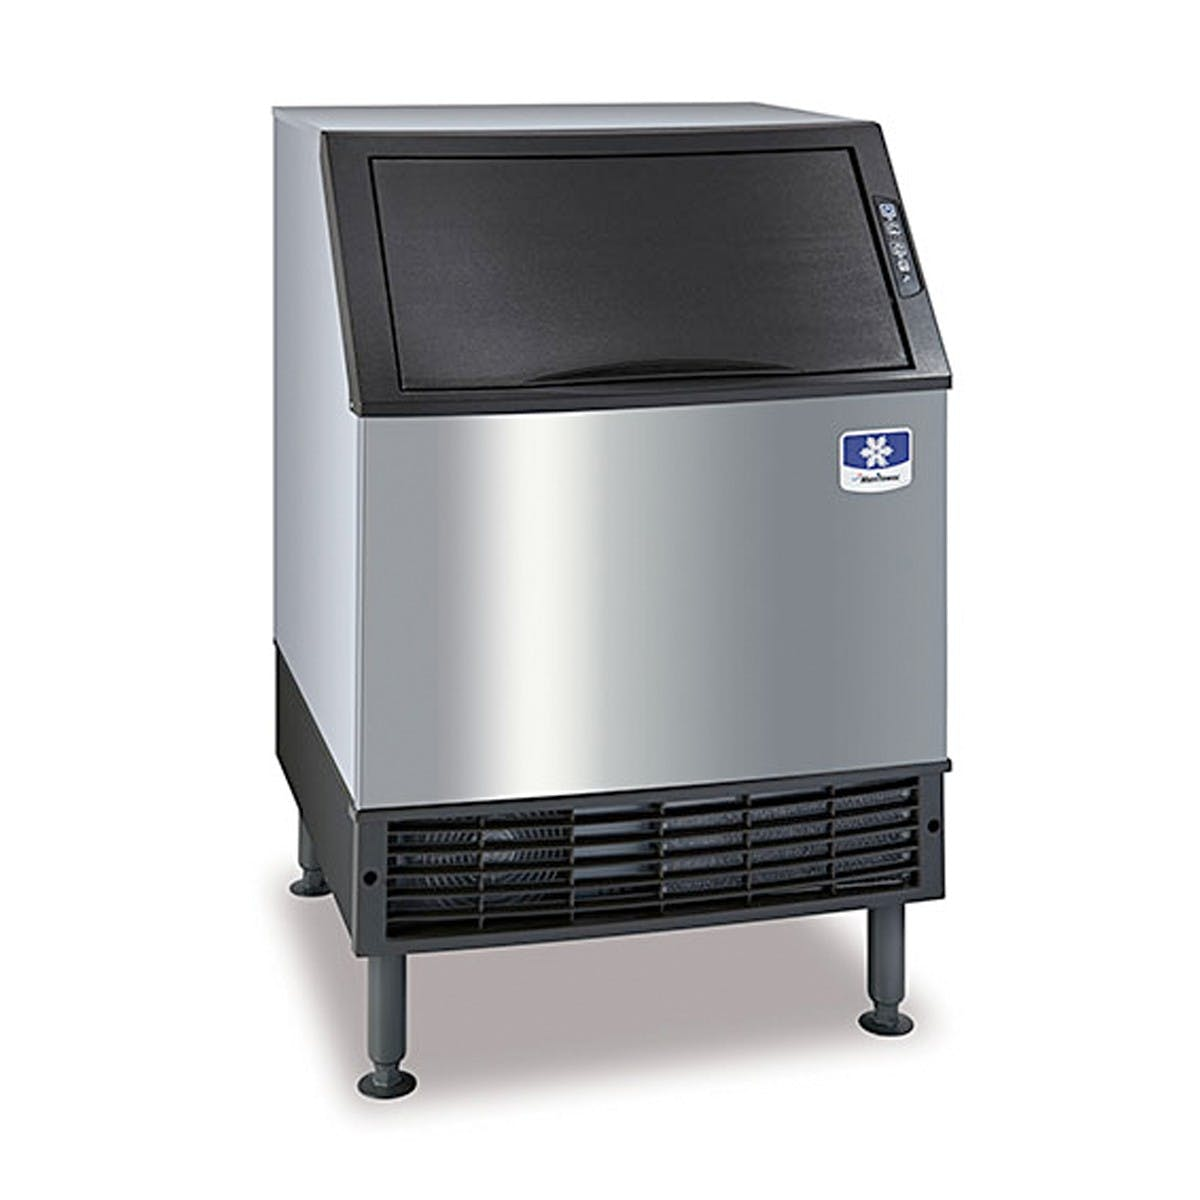 Manitowoc Ice UD-0240W NEO Undercounter 201 lb Dice Cube Ice Maker - Water Cooled Ice machine sold by Mission Restaurant Supply